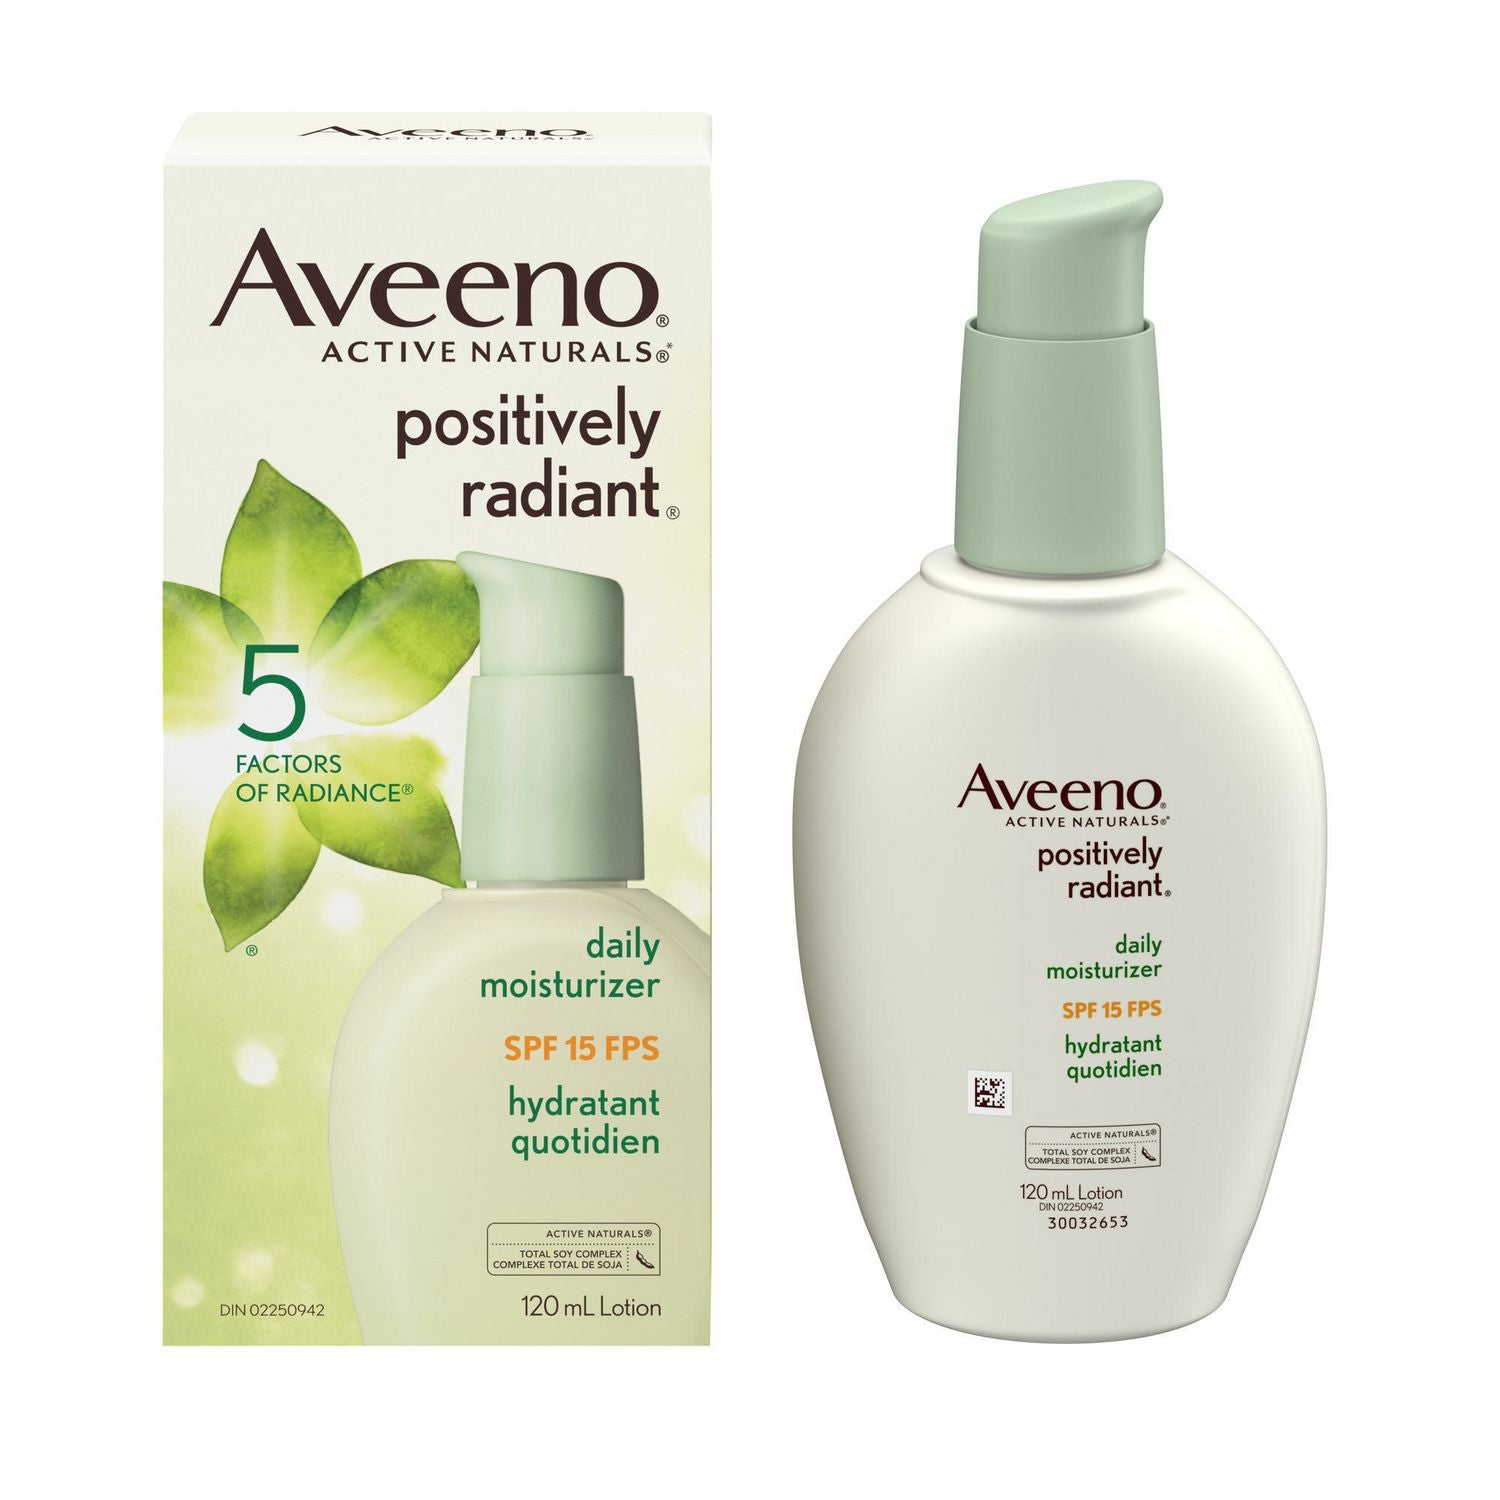 Aveeno Active Naturals Positively Radiant Daily Moisturizer SPF 15 120mL